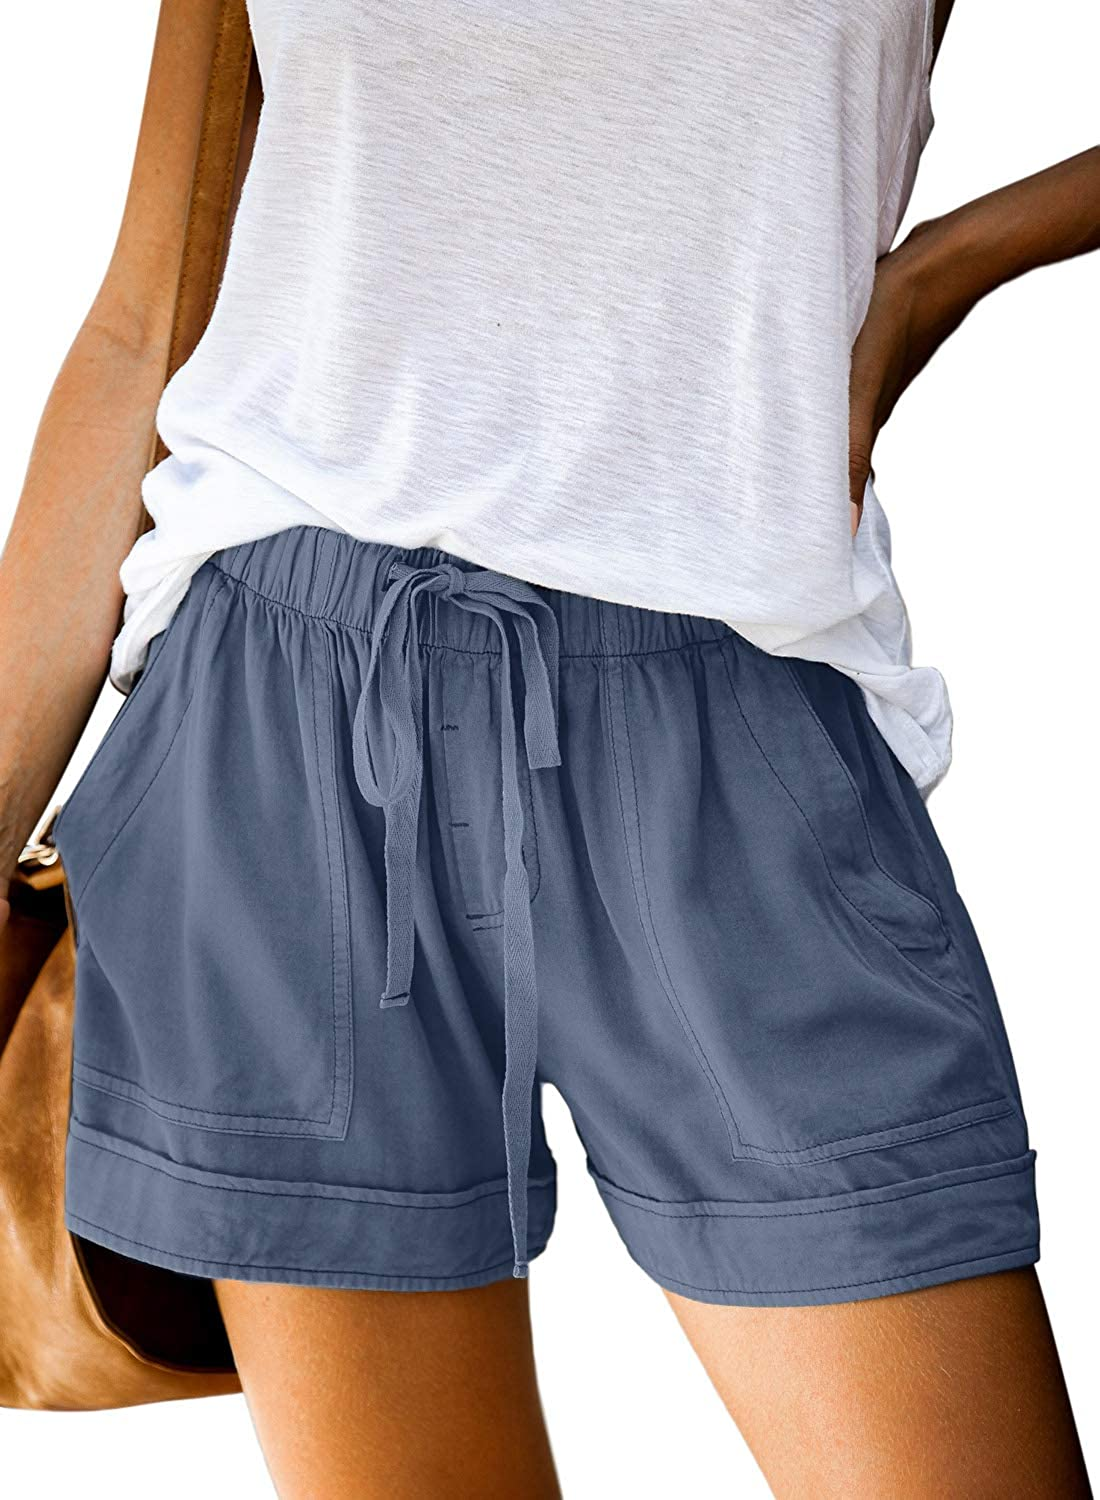 Falags Women's Casual Shorts Summer Drawstring Elastic Waist Solid Color Beach Shorts Lounge Pants with Pockets